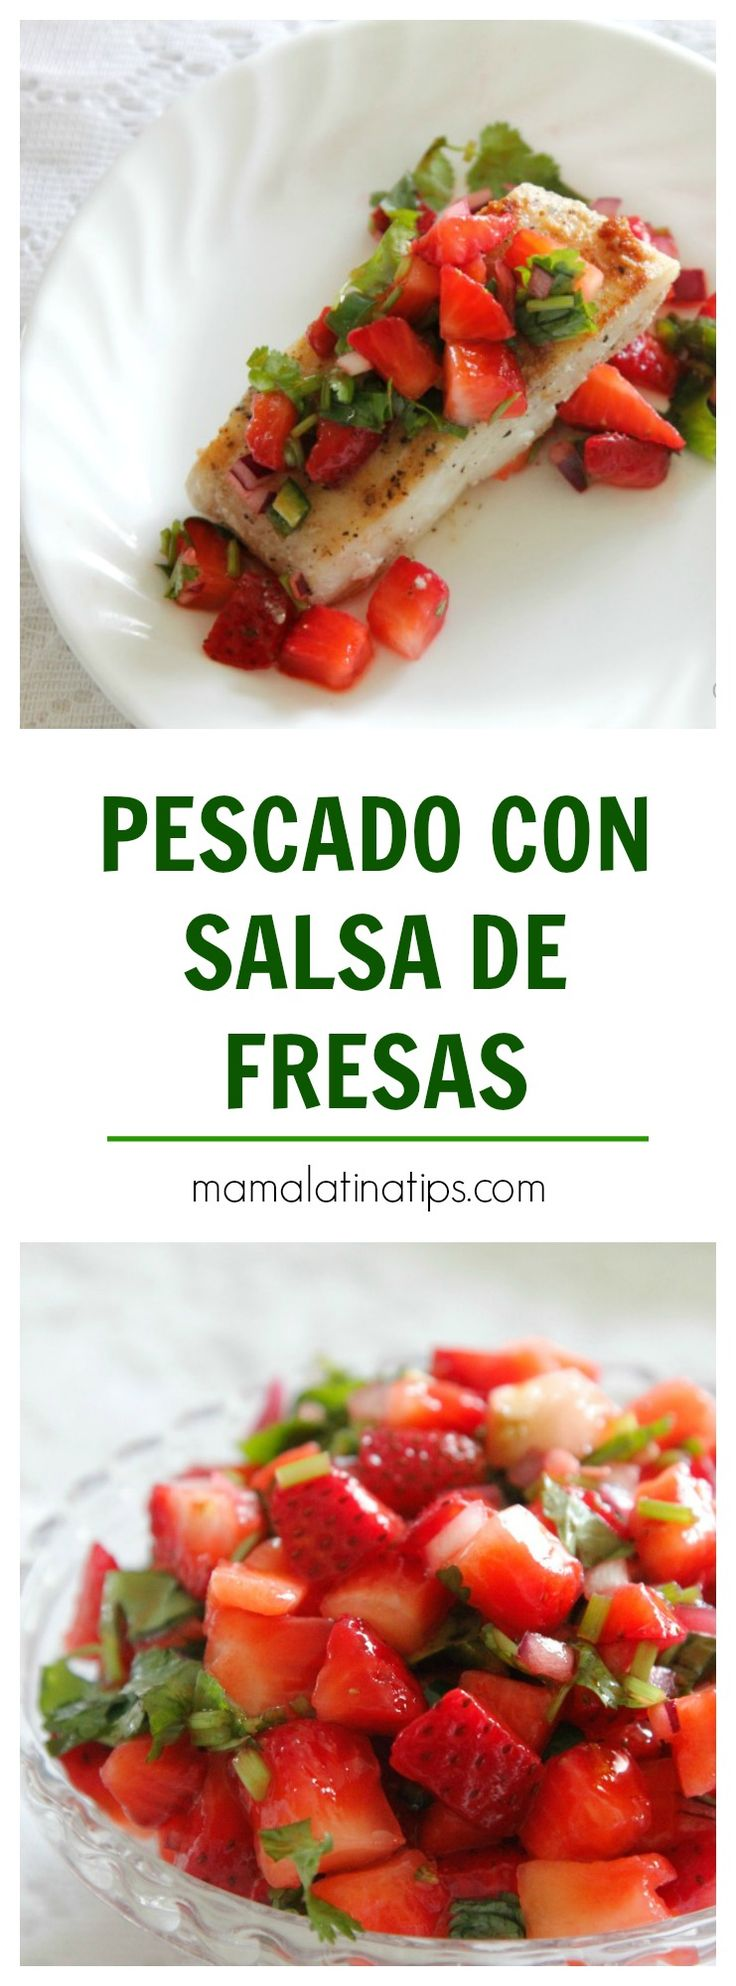 This pan seared cod with strawberry salsa was inspired by the fragrant fields of coastal California strawberries. Recipe, step by step instructions and photos included. Cod Recipes, Fish Recipes, Cooking Recipes, Strawberry Salsa, Fruit Salsa, Tilapia, Peppers And Onions, Salad, Stuffed Peppers